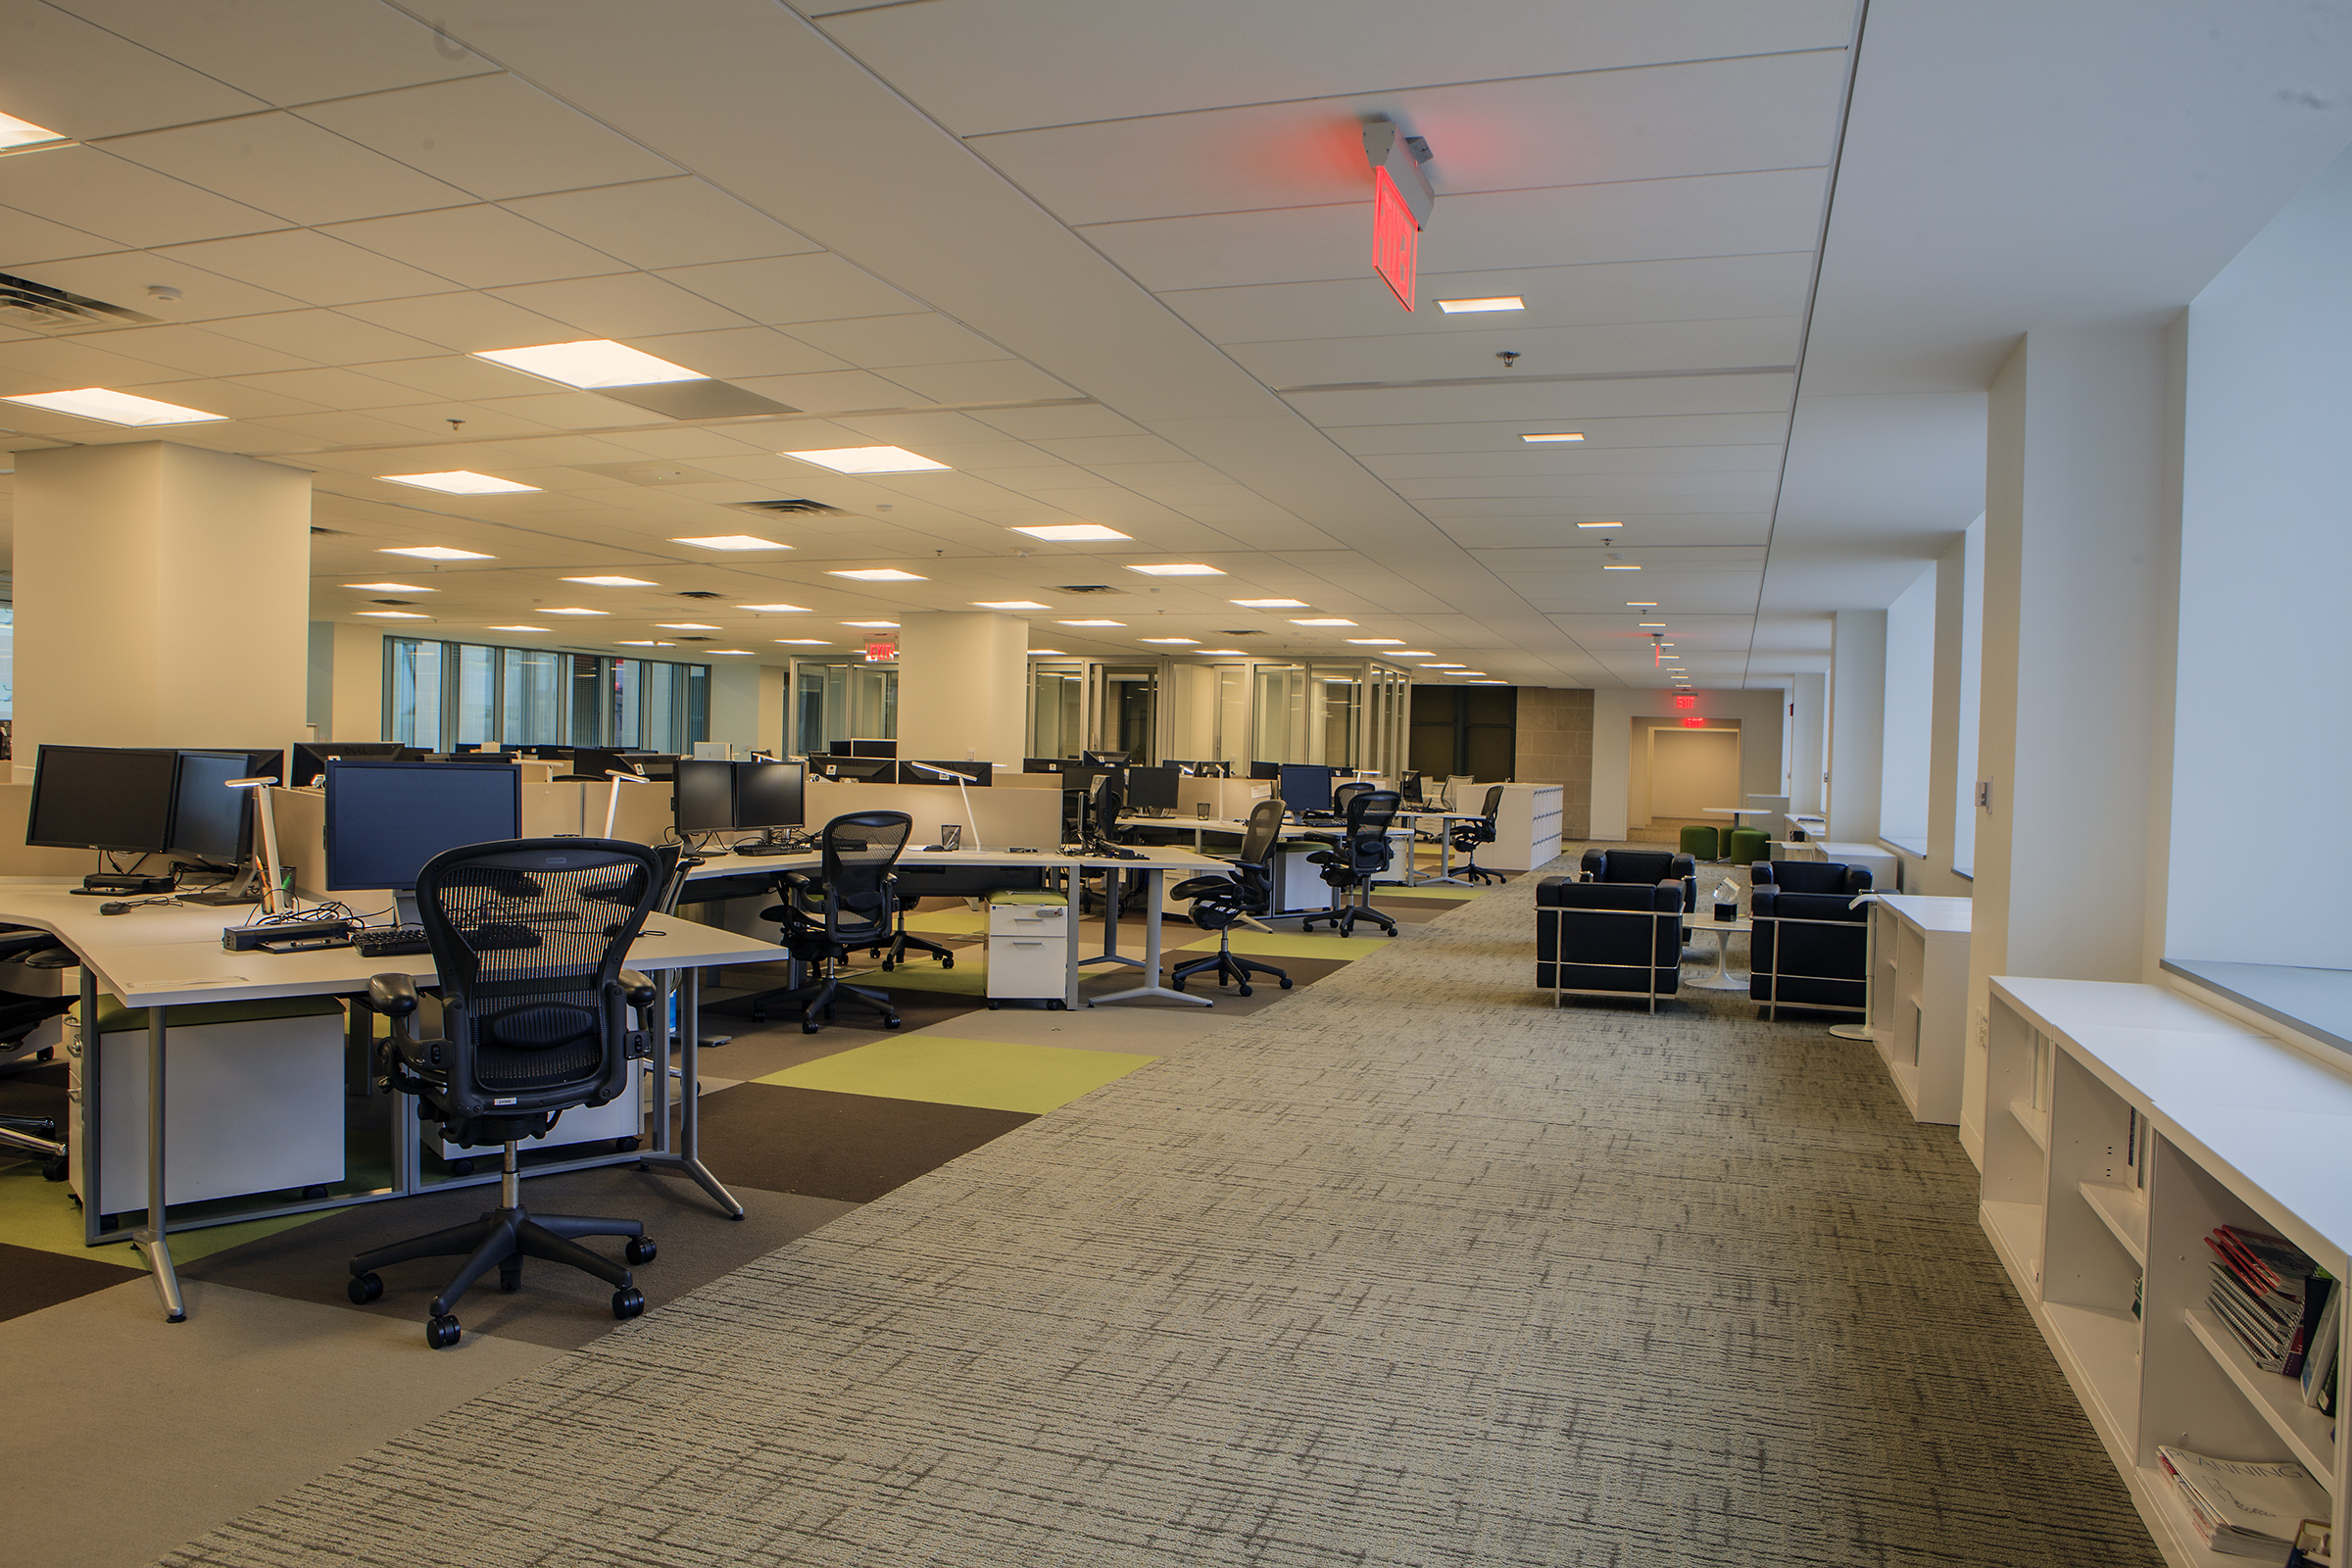 Gsa to add 1 000 more people to its dc headquarters - Office building interior design ideas ...